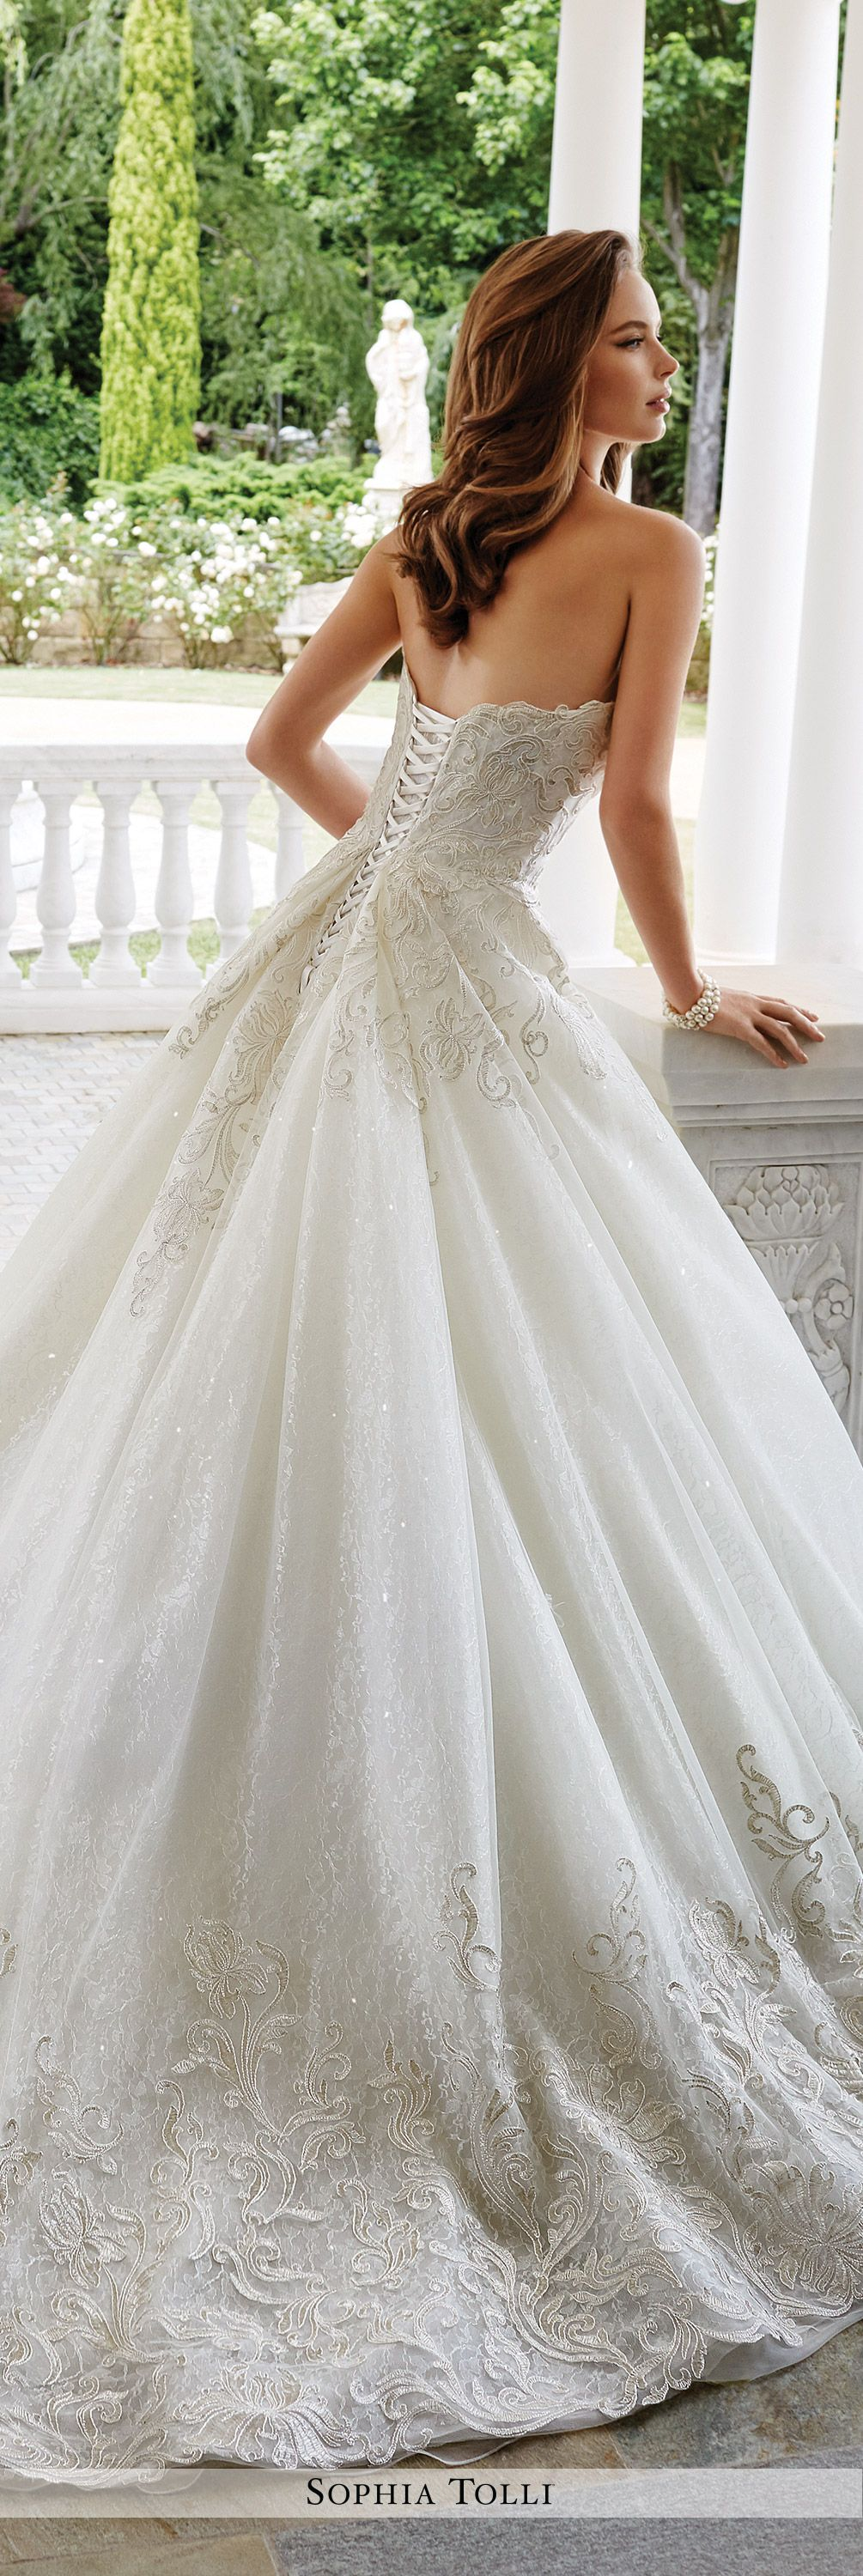 y21661 veneto sophia tolli wedding dress tulle ball gown